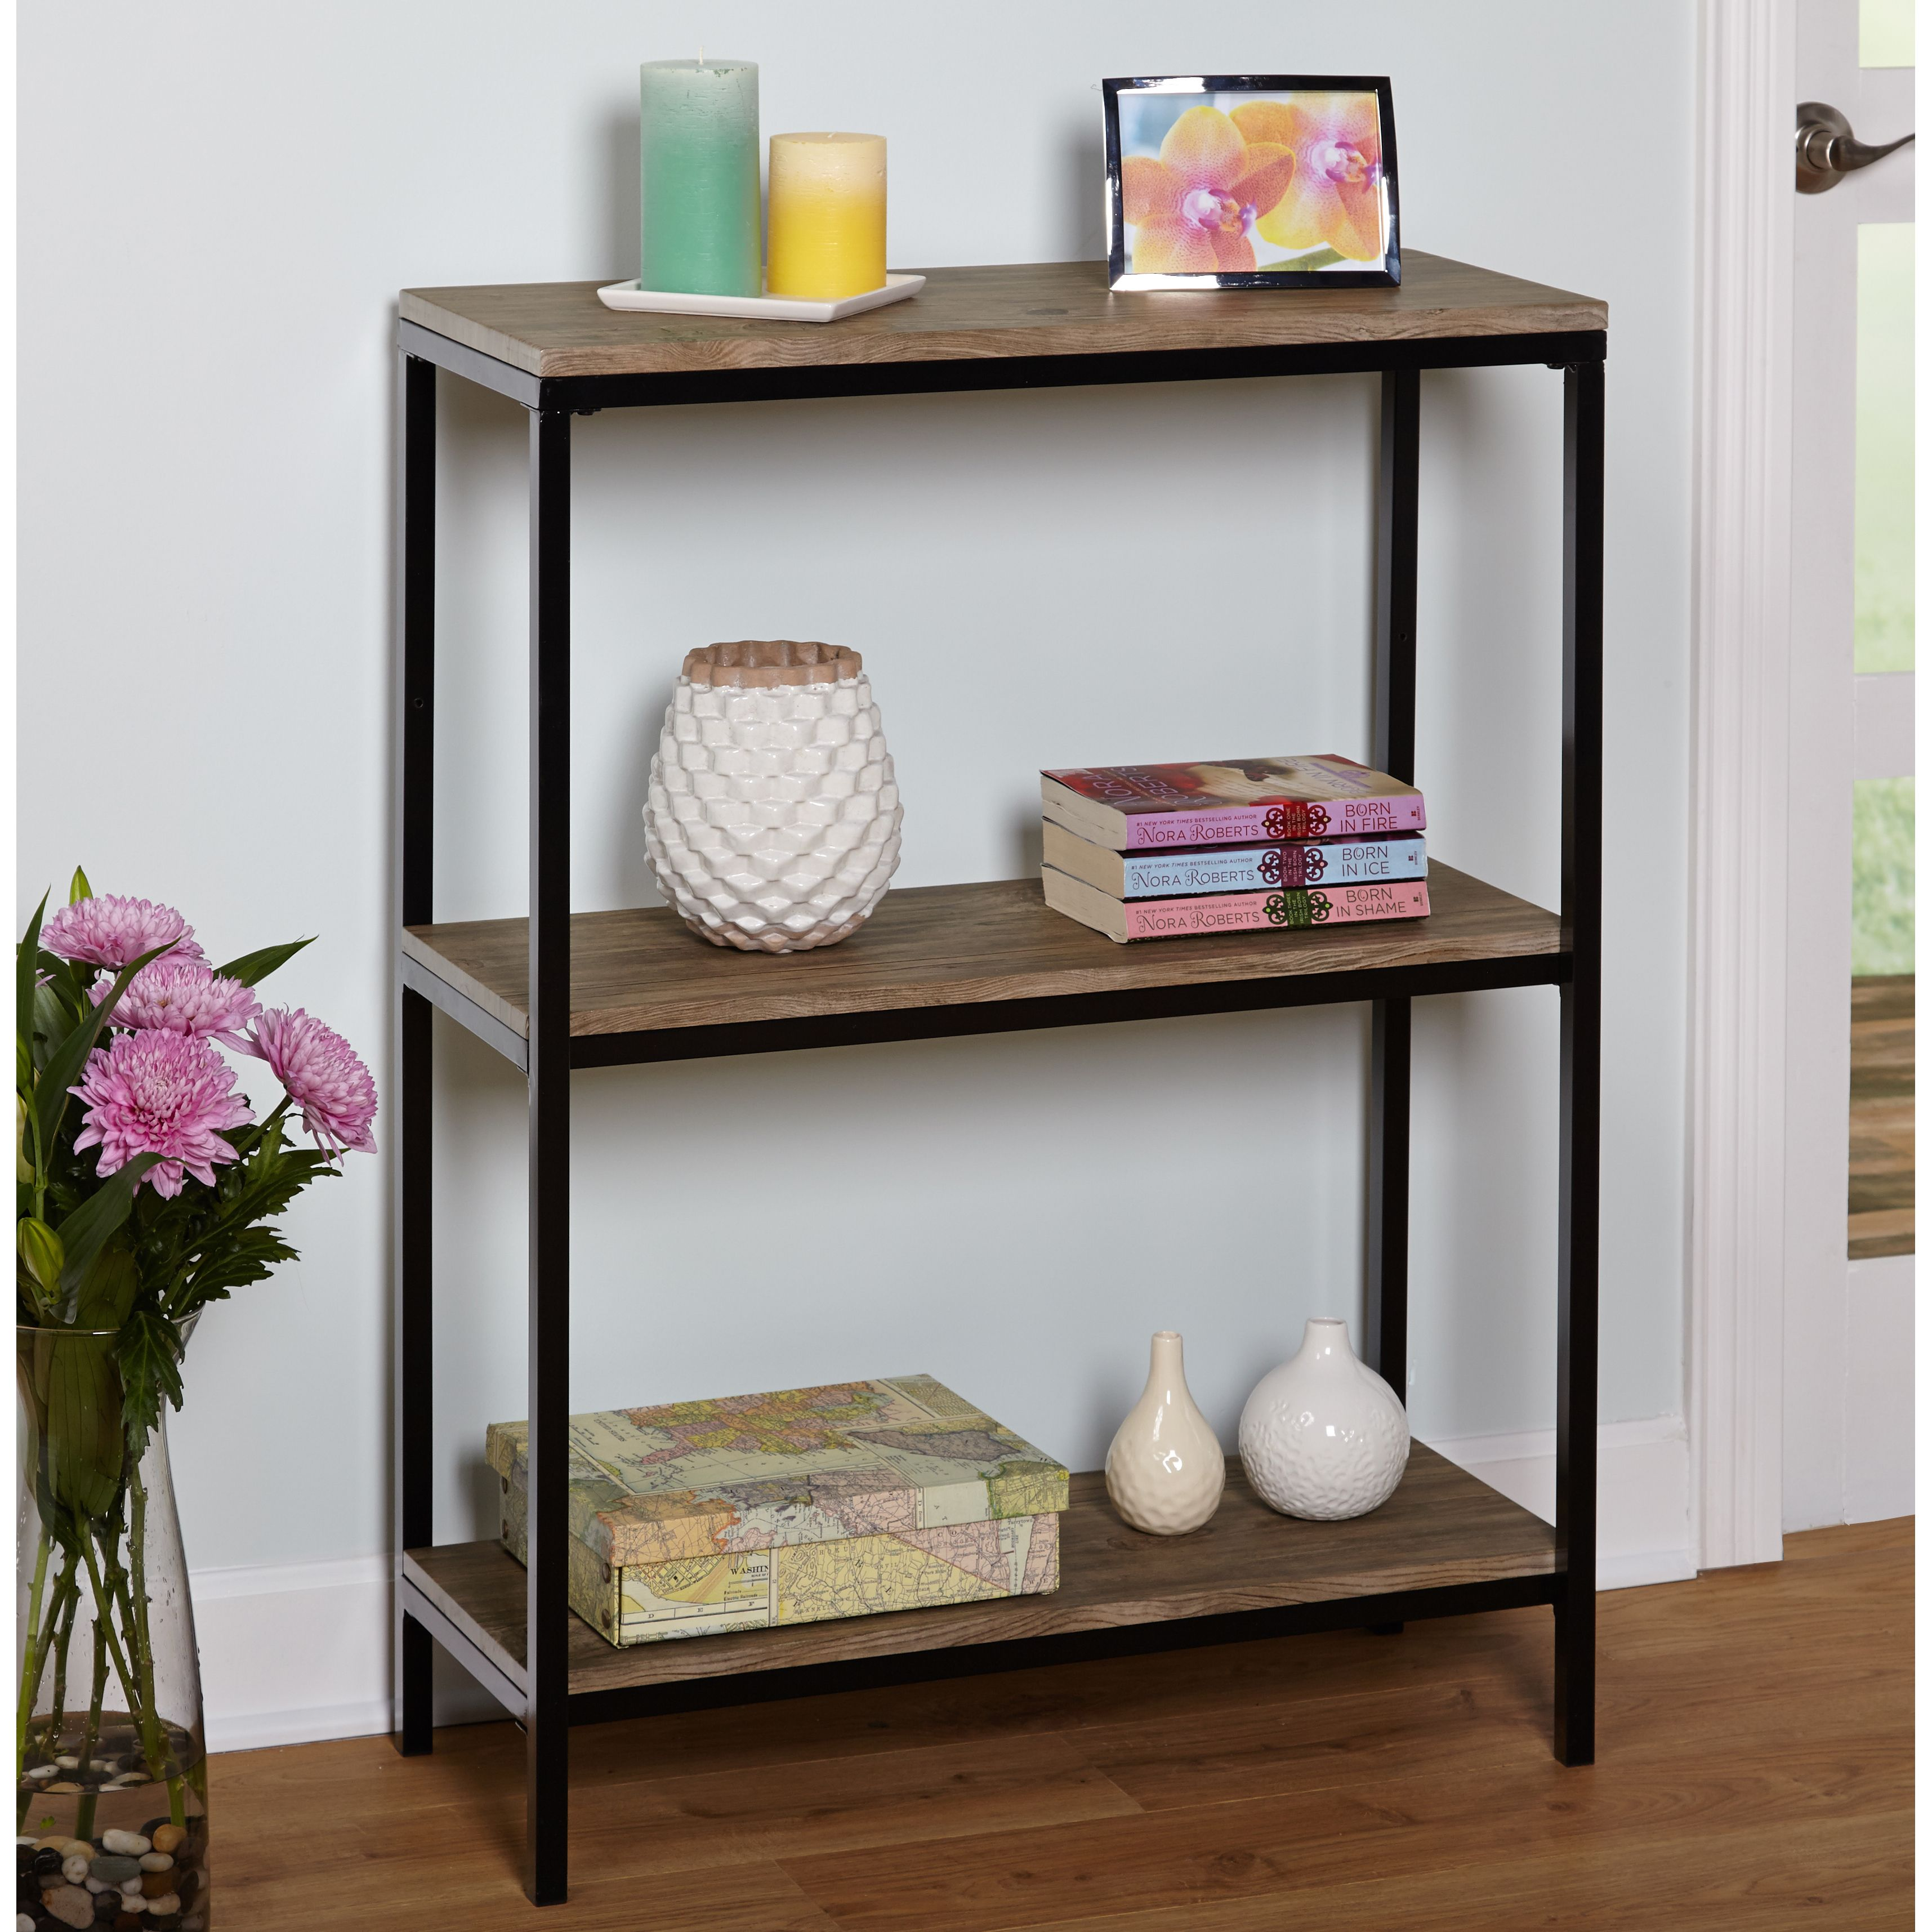 sturdy tier storage black office wood bookshelf p living ladder room of and cute shelf picture metal